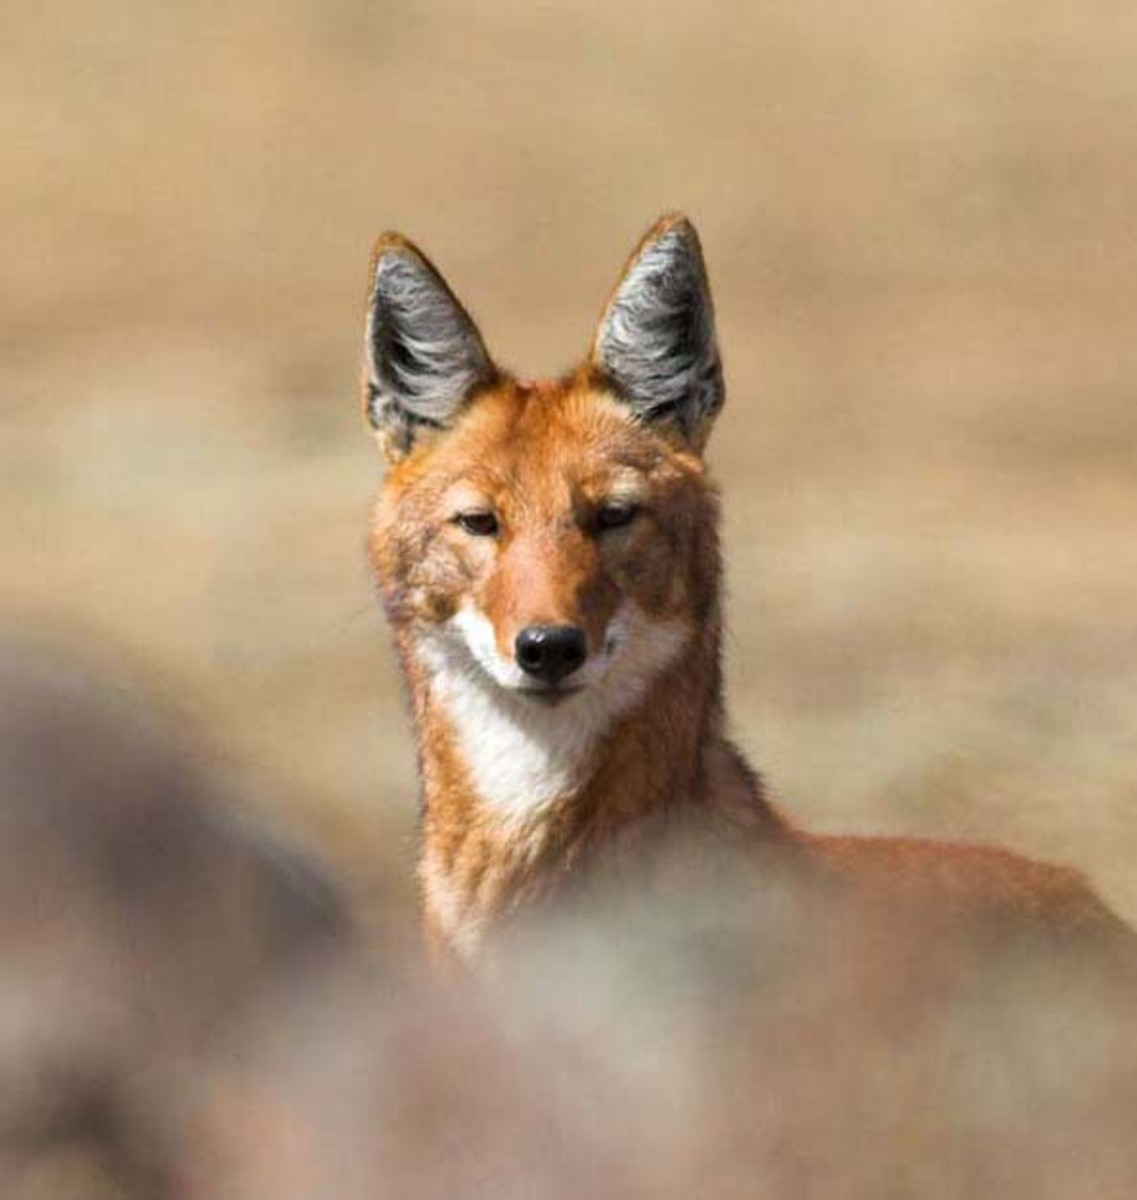 The sly grin and sharp angles of the Ethiopian wolf are almost coyote-like, but there is no immediate relation.